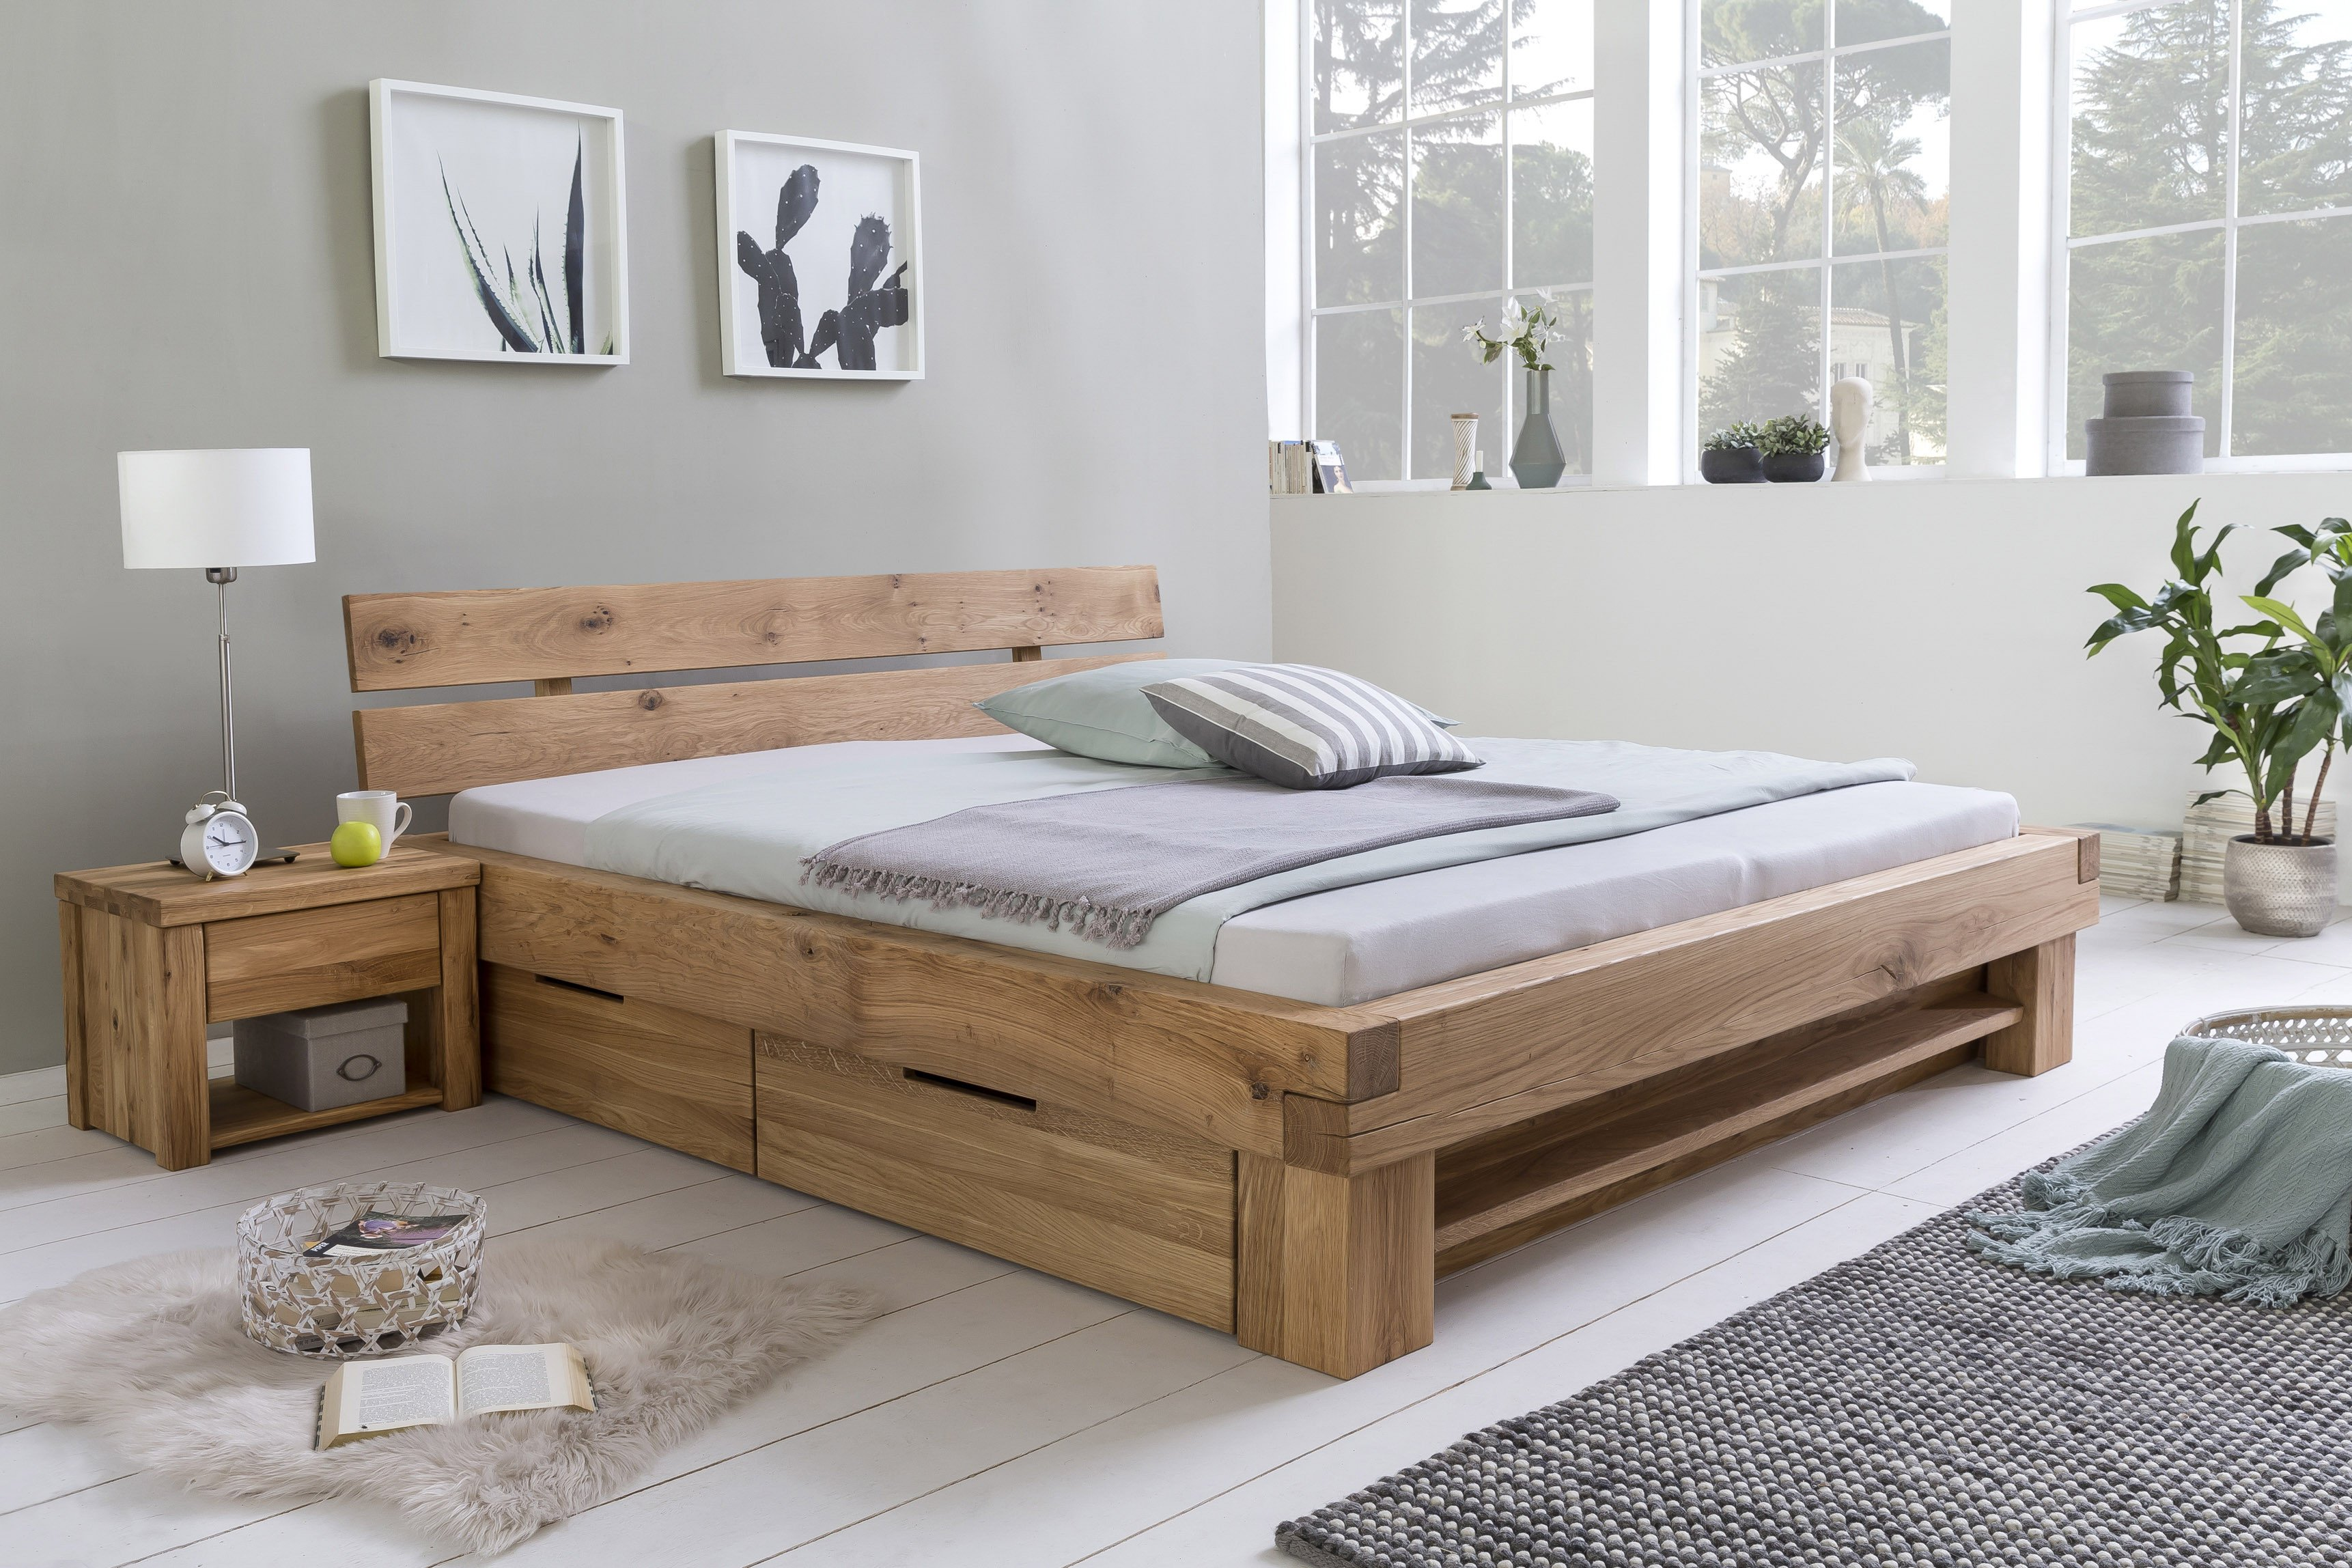 woodlive timber massivholzbett wildeiche massiv m bel letz ihr online shop. Black Bedroom Furniture Sets. Home Design Ideas